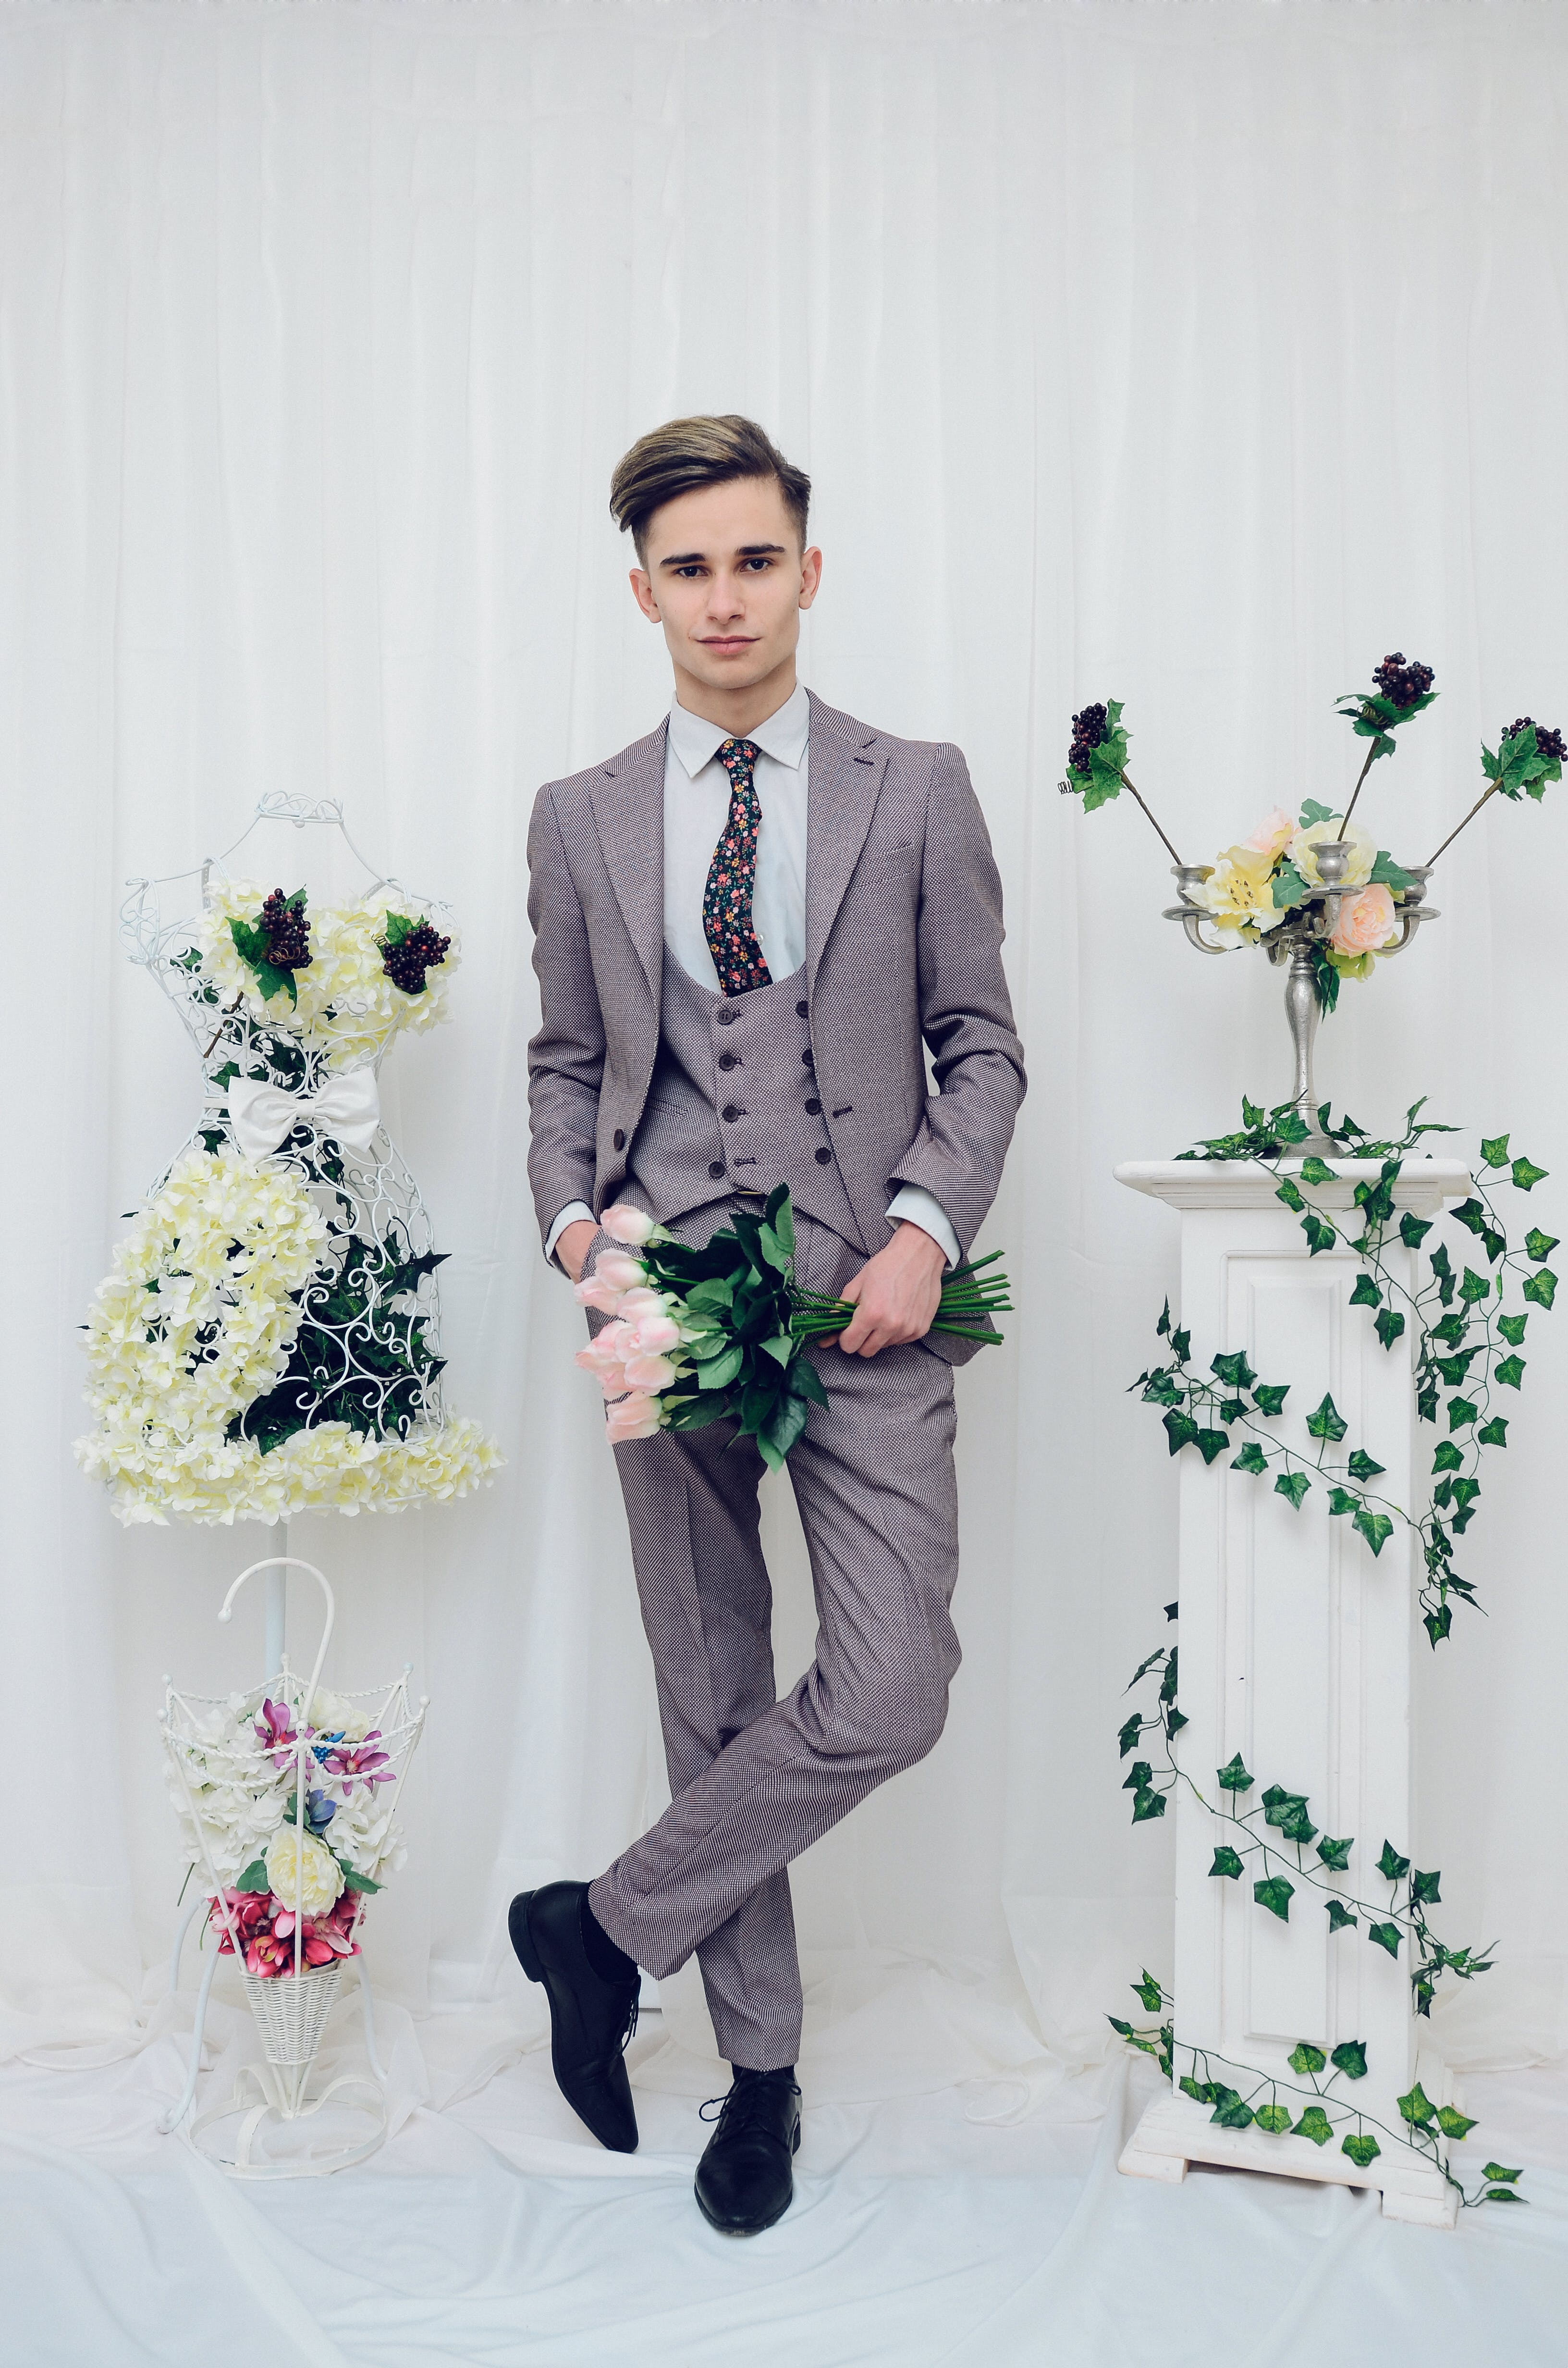 Smiling Man Standing Between Flowers Holding Pink Flowers Bouquet